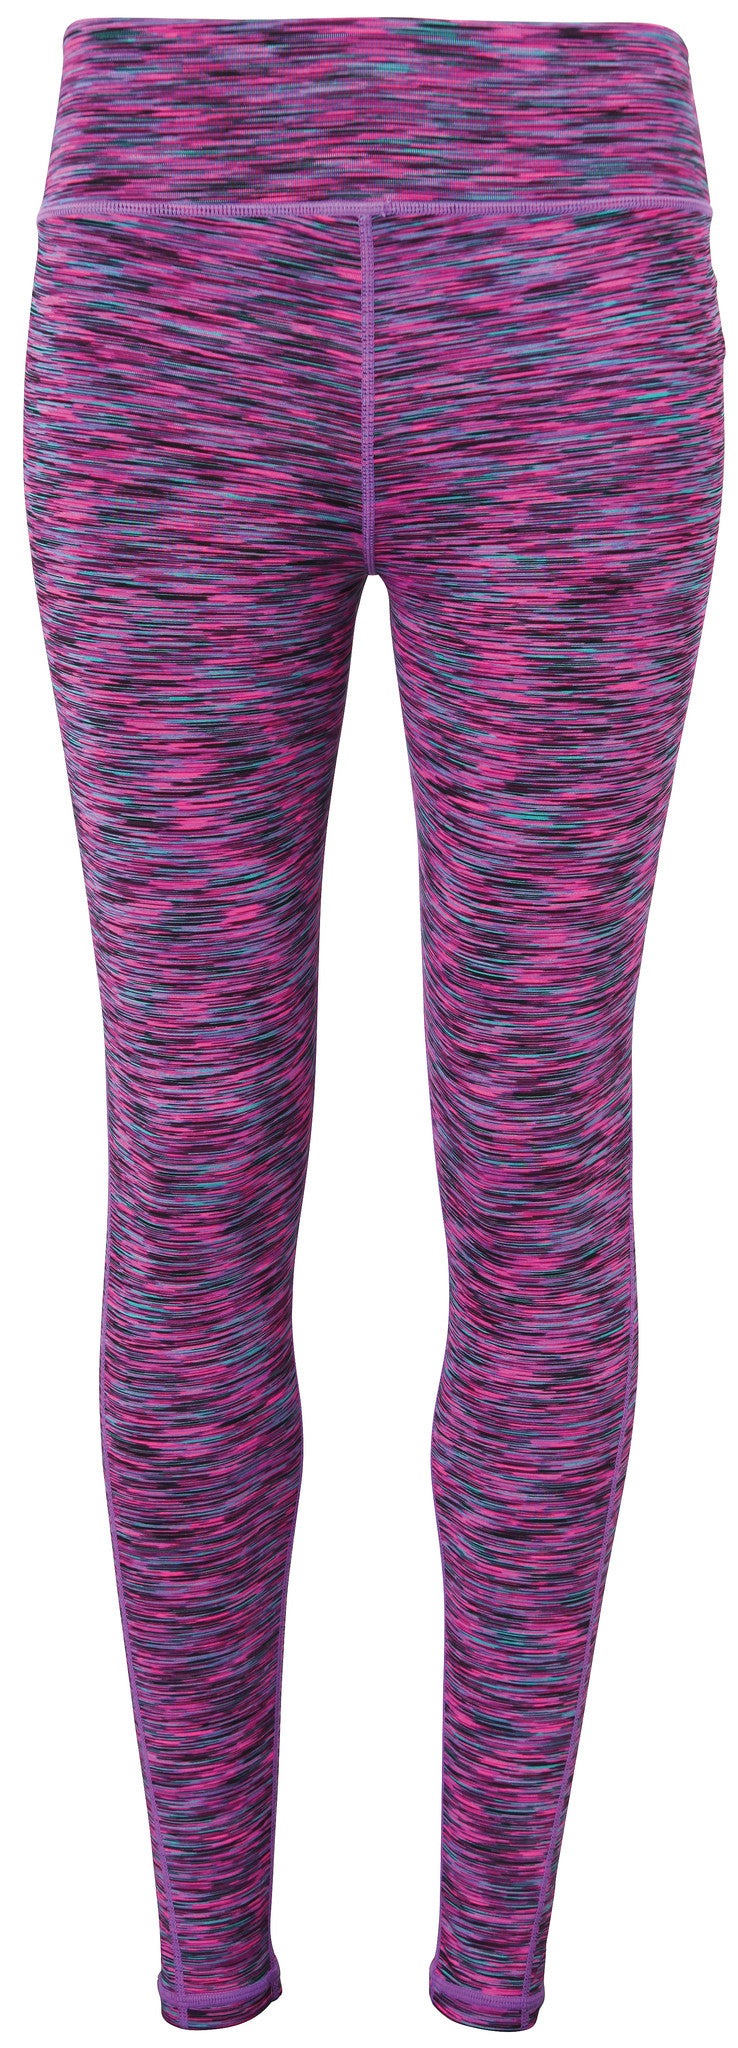 Women's space pink leggings - SoreTodayStrongTomorrow